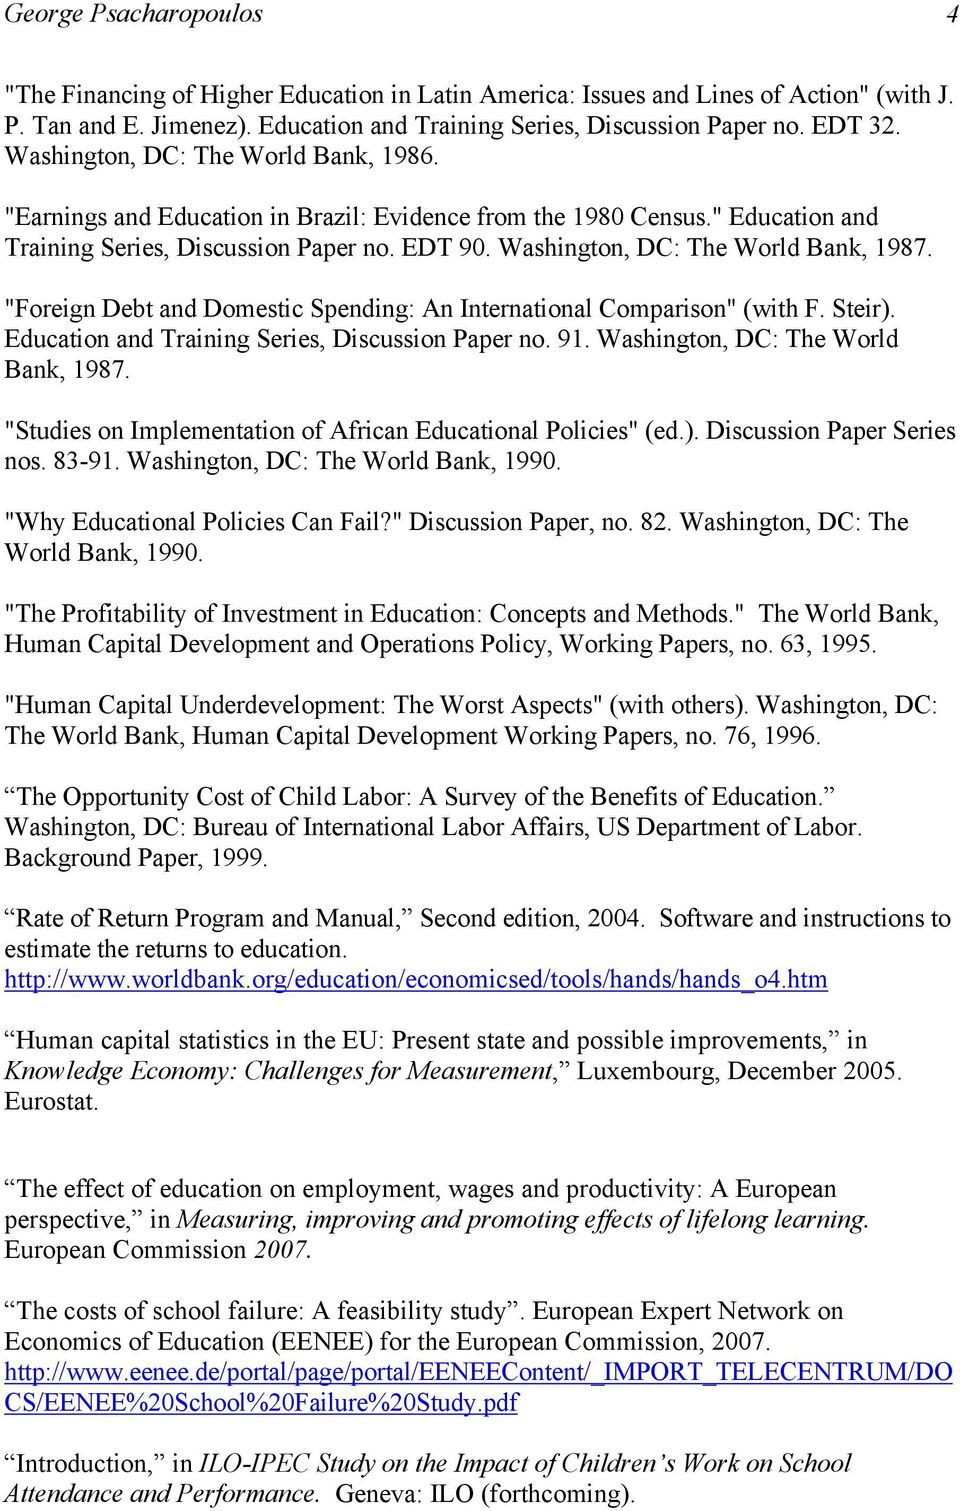 "Washington, DC: The World Bank, 1987. ""Foreign Debt and Domestic Spending: An International Comparison"" (with F. Steir). Education and Training Series, Discussion Paper no. 91."